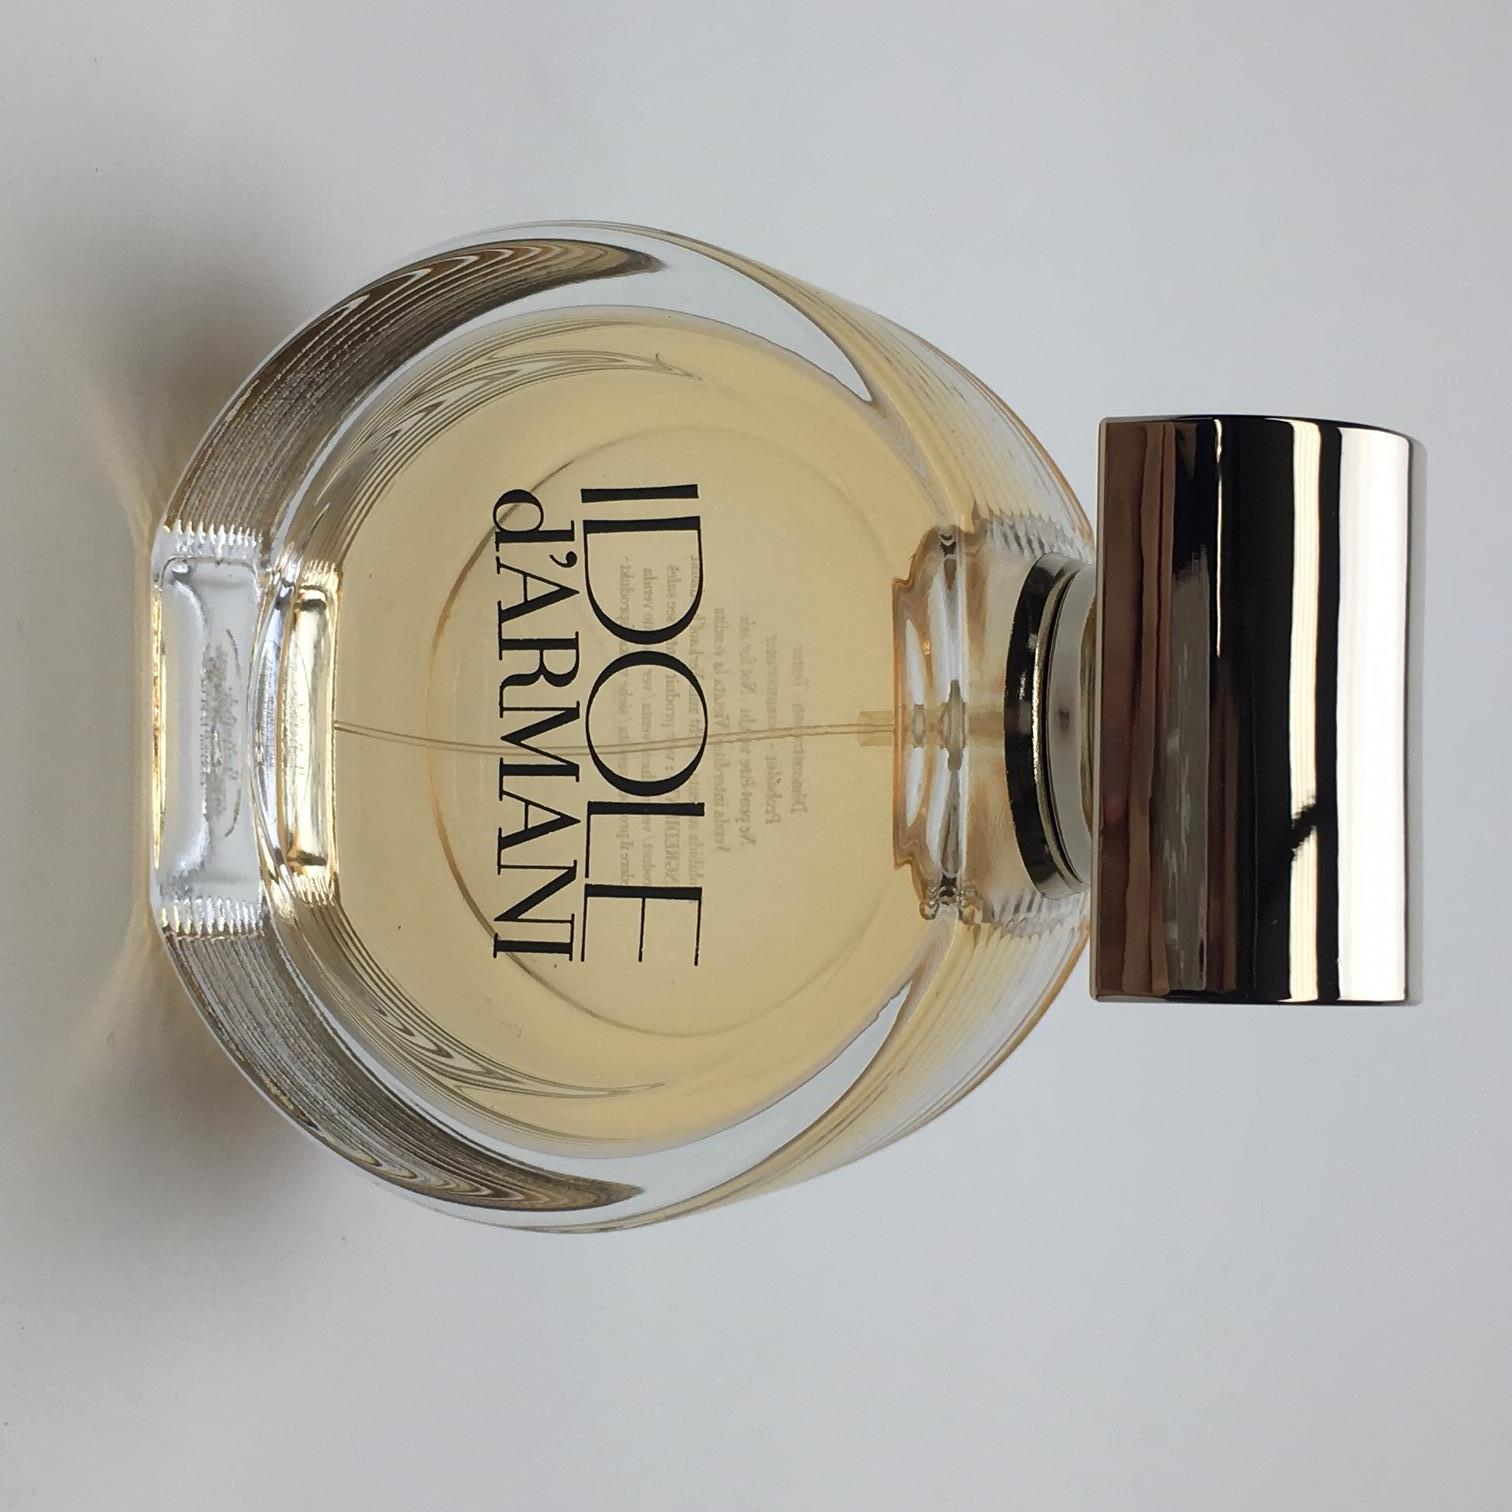 Edp Tester Idole D Armani 50ml Edp Spray Unboxed Tester By Giorgio Armani